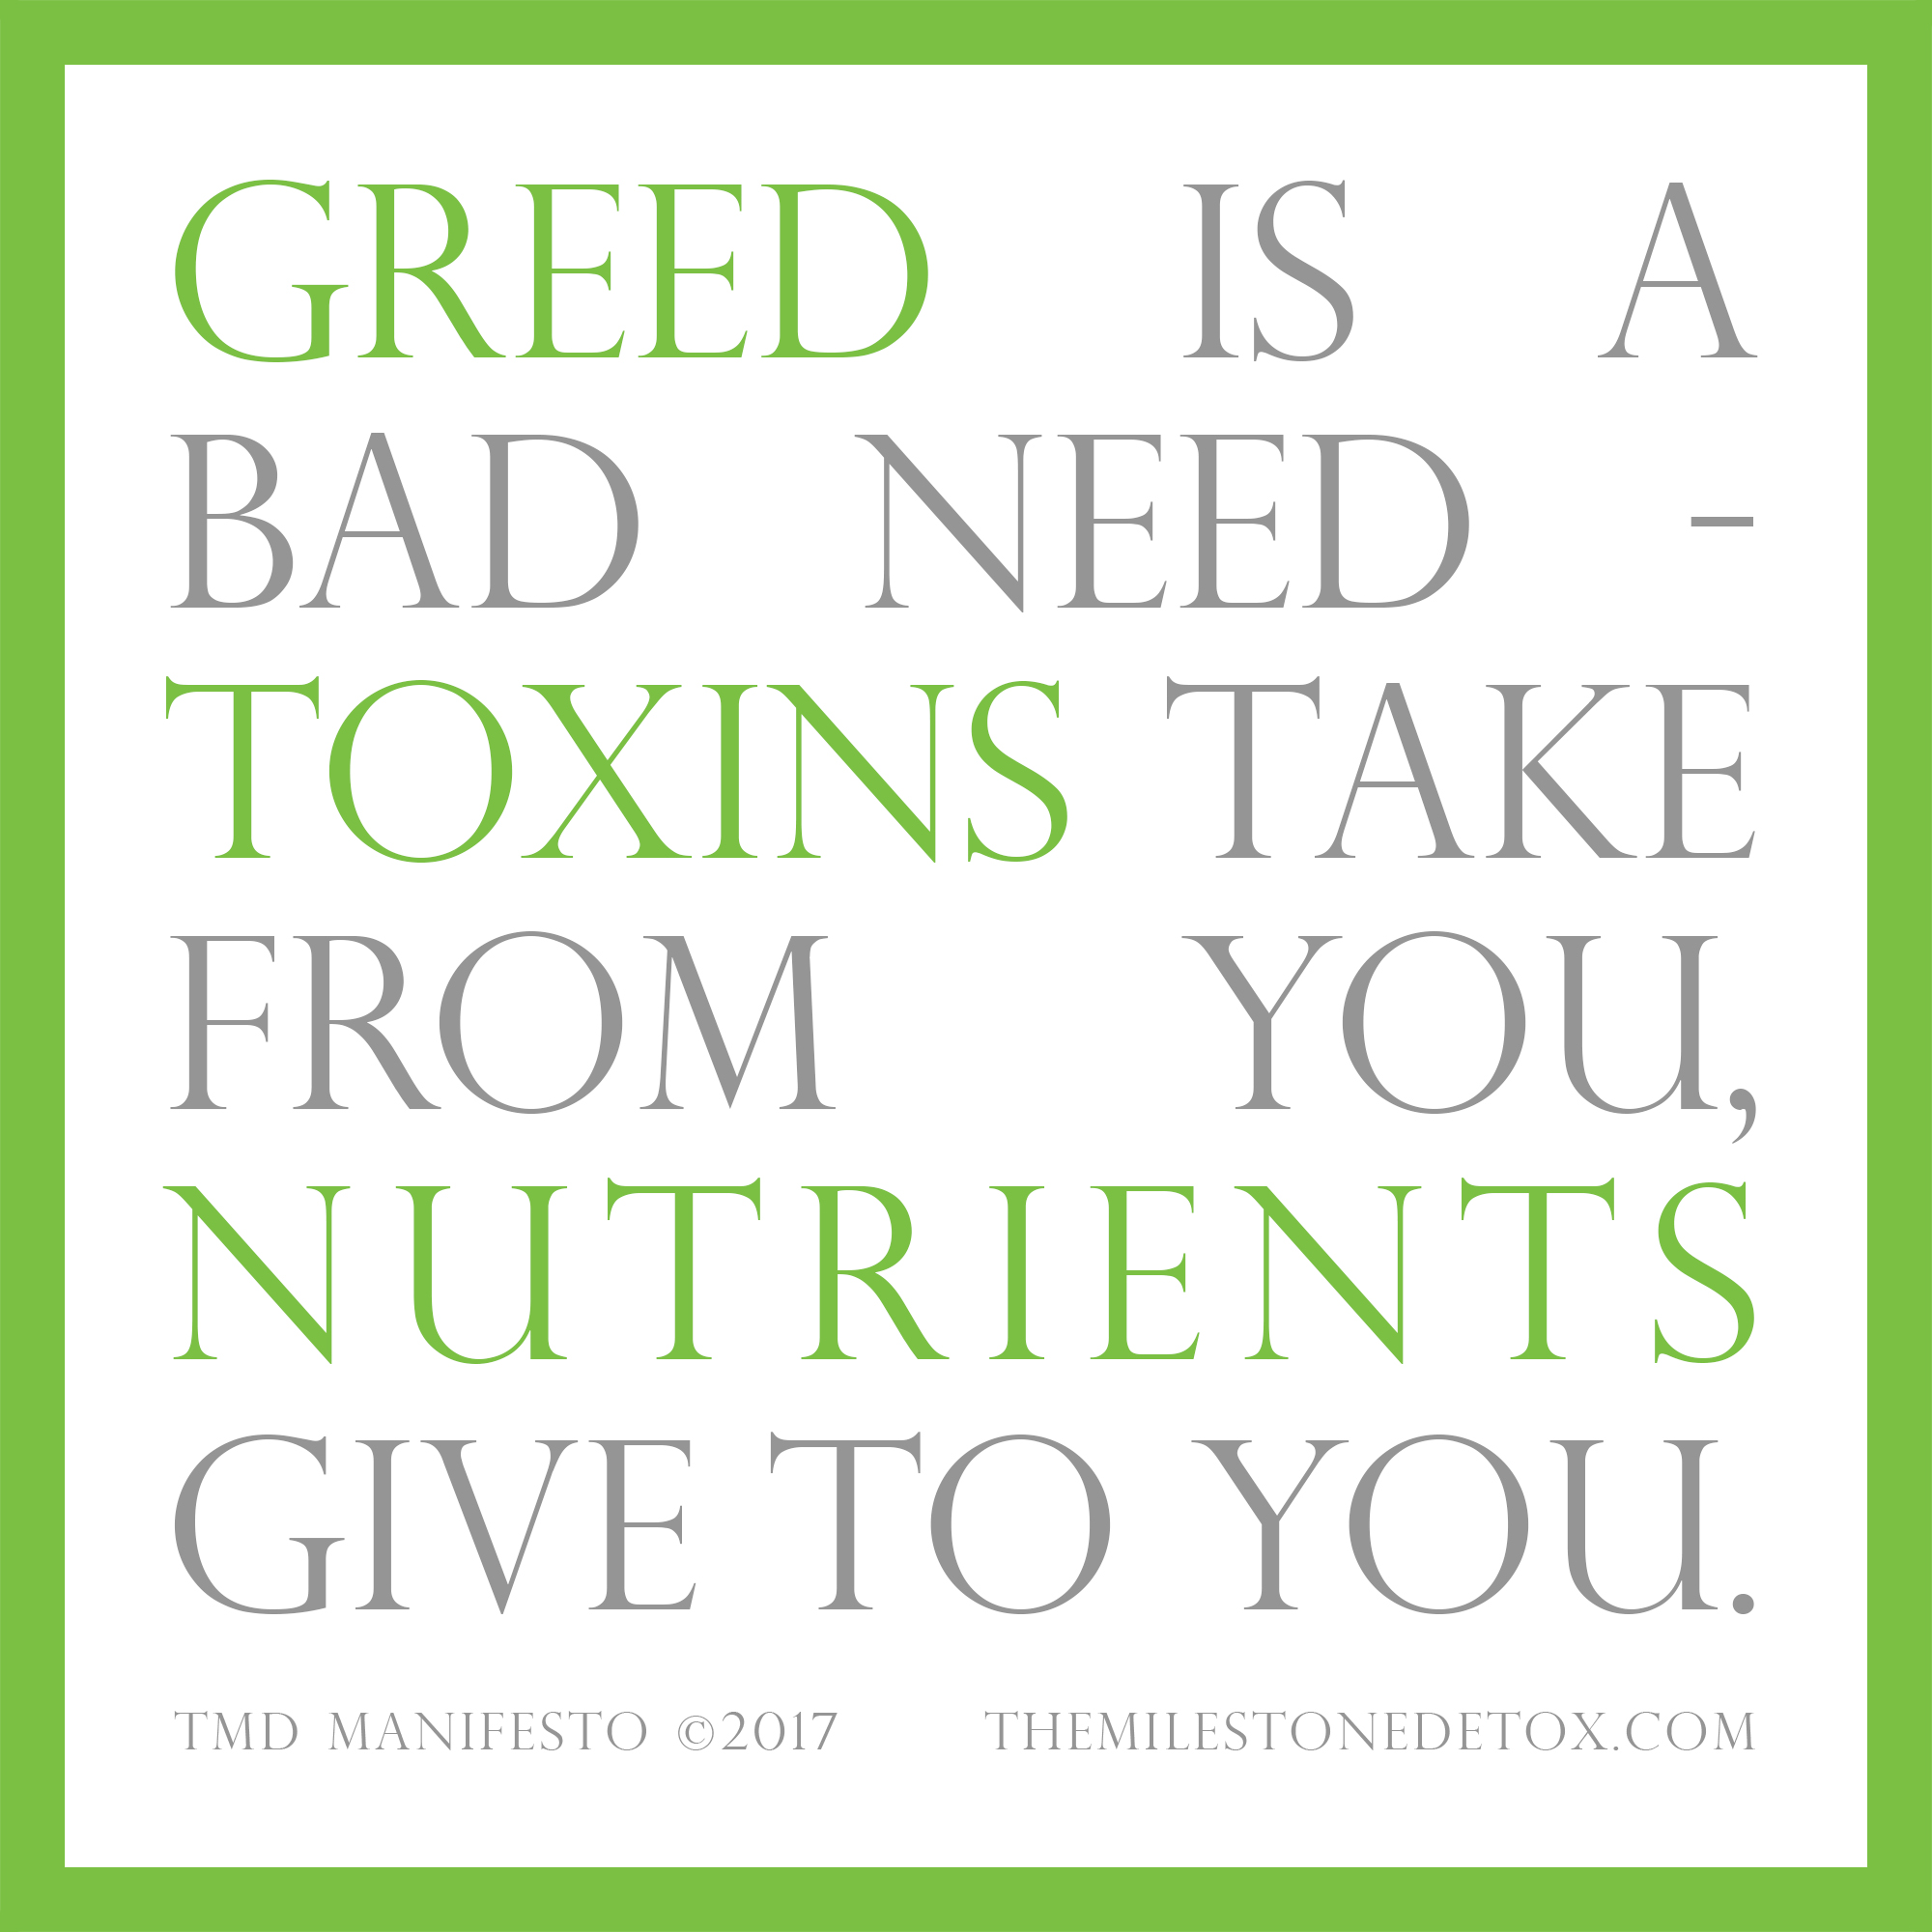 Greed toxins nutrients.jpg